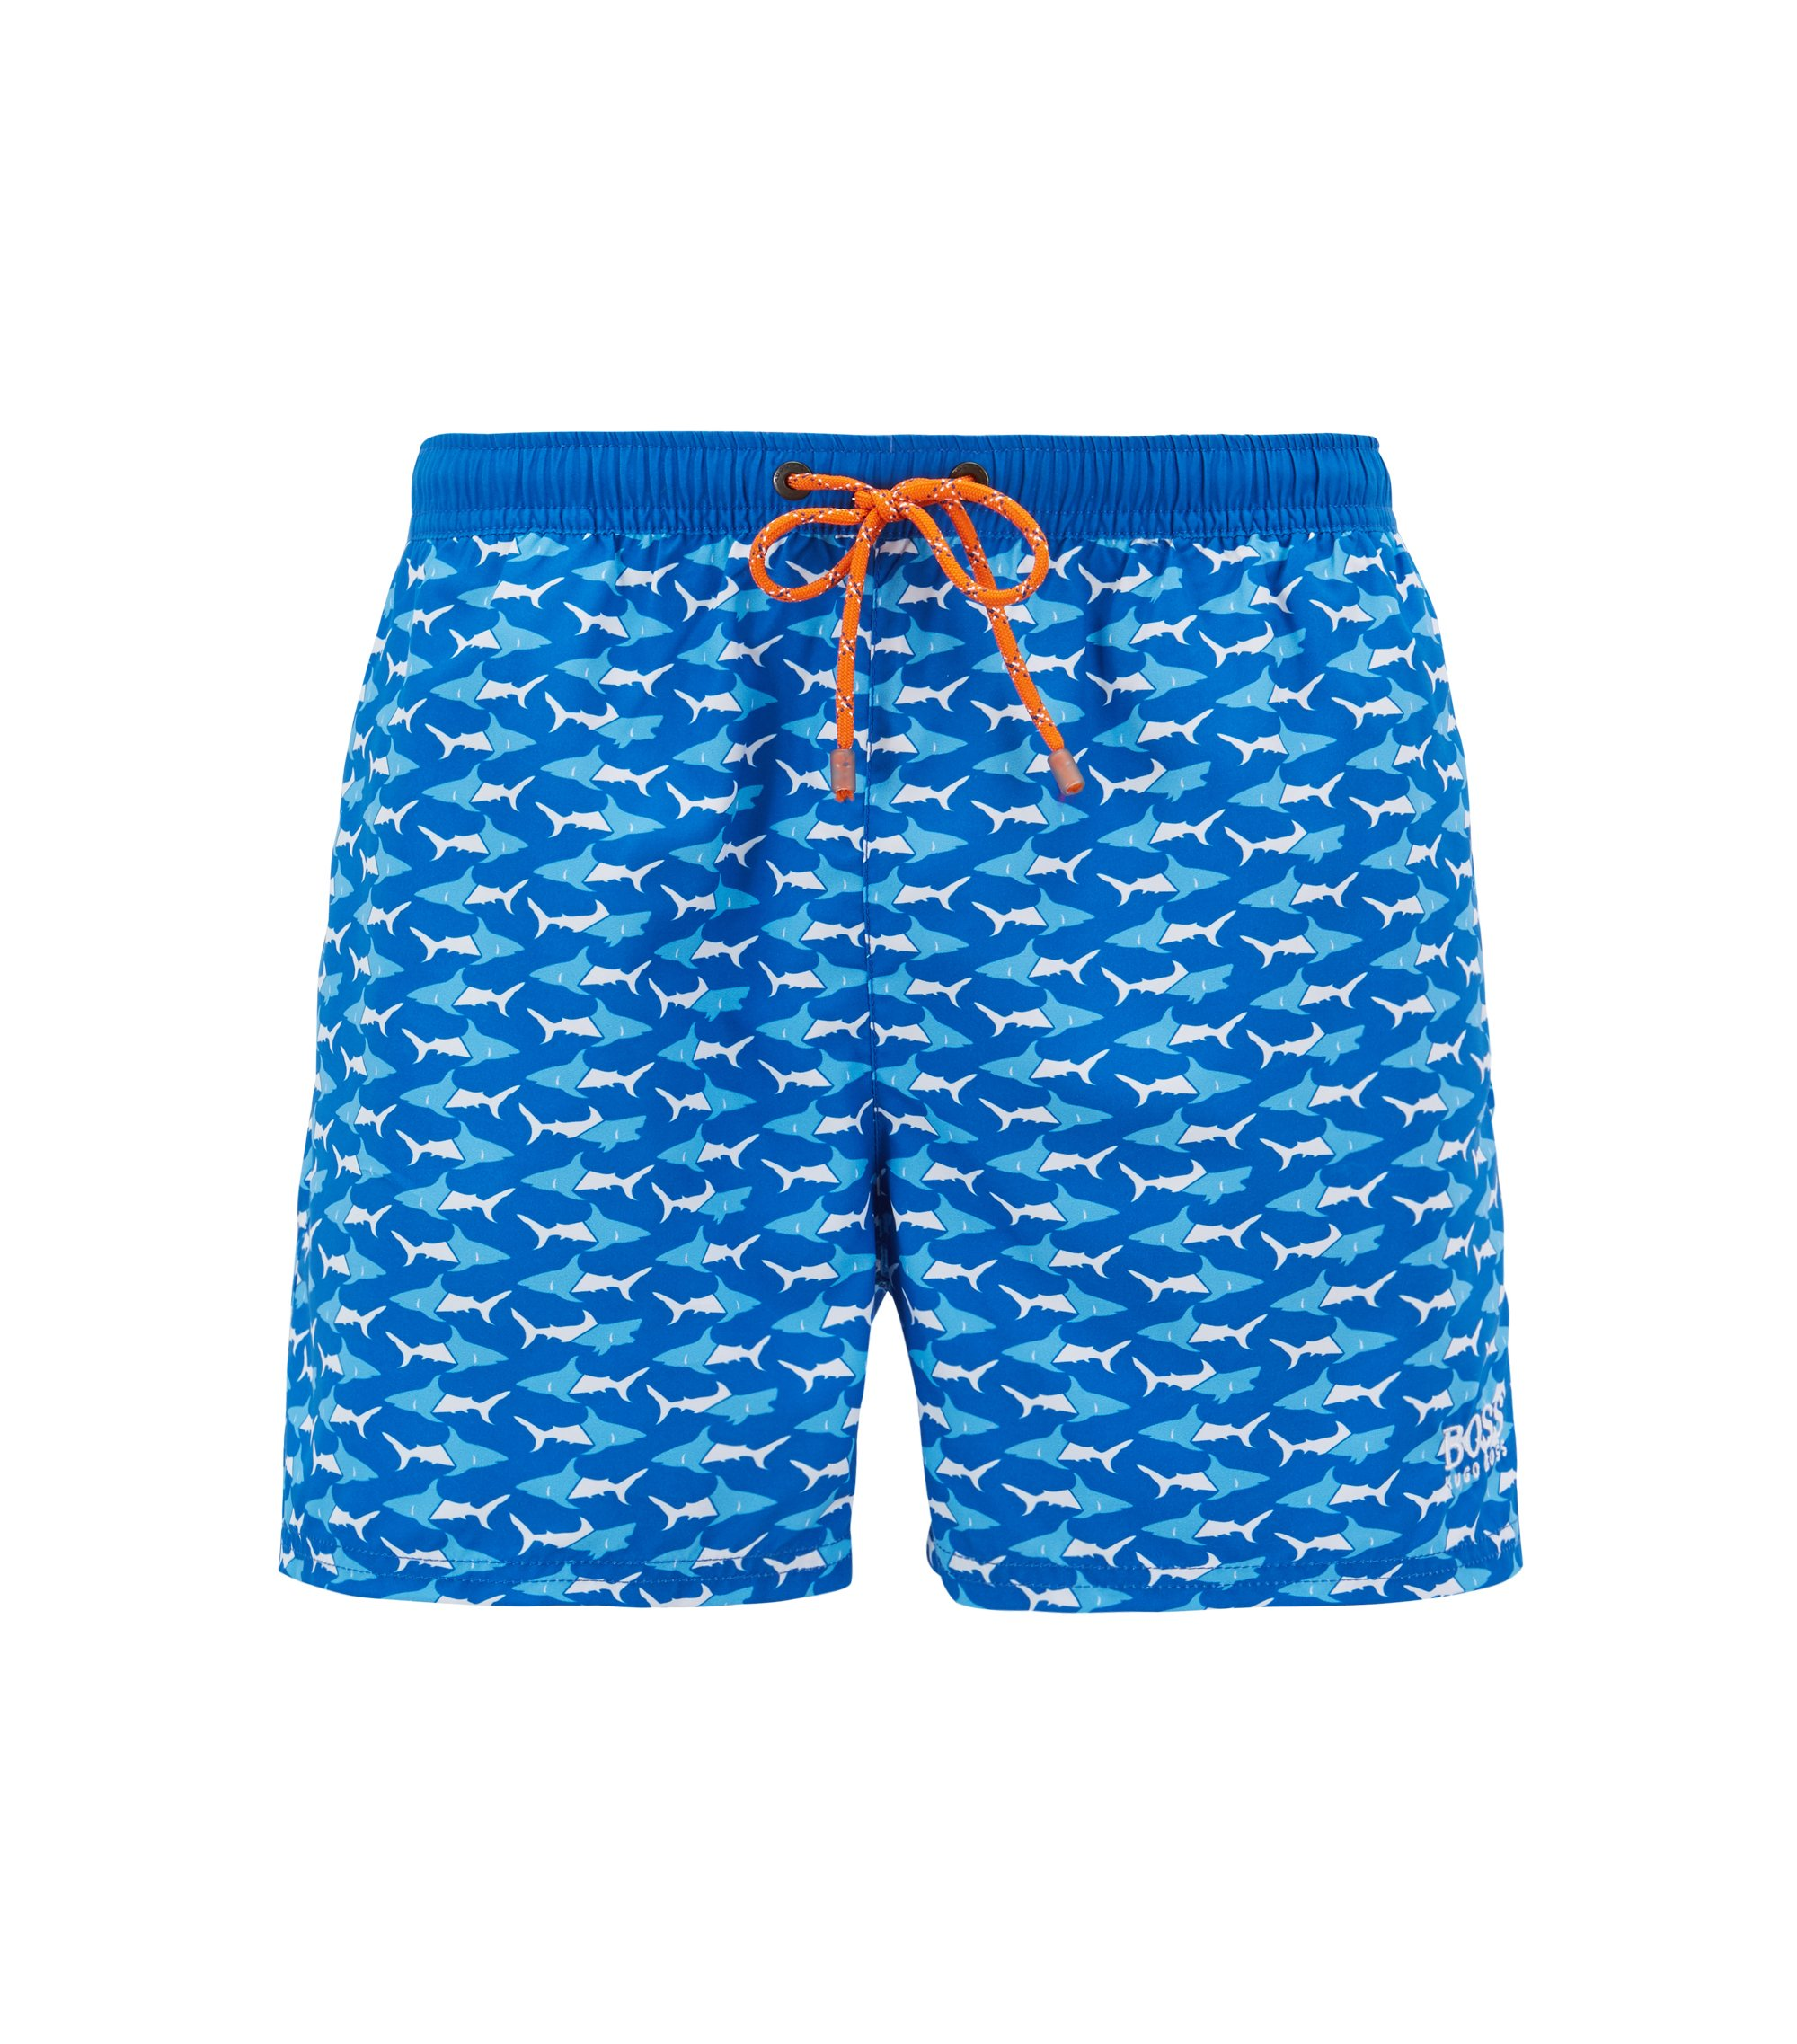 Shorter-length swim shorts with sea-life print, Blue